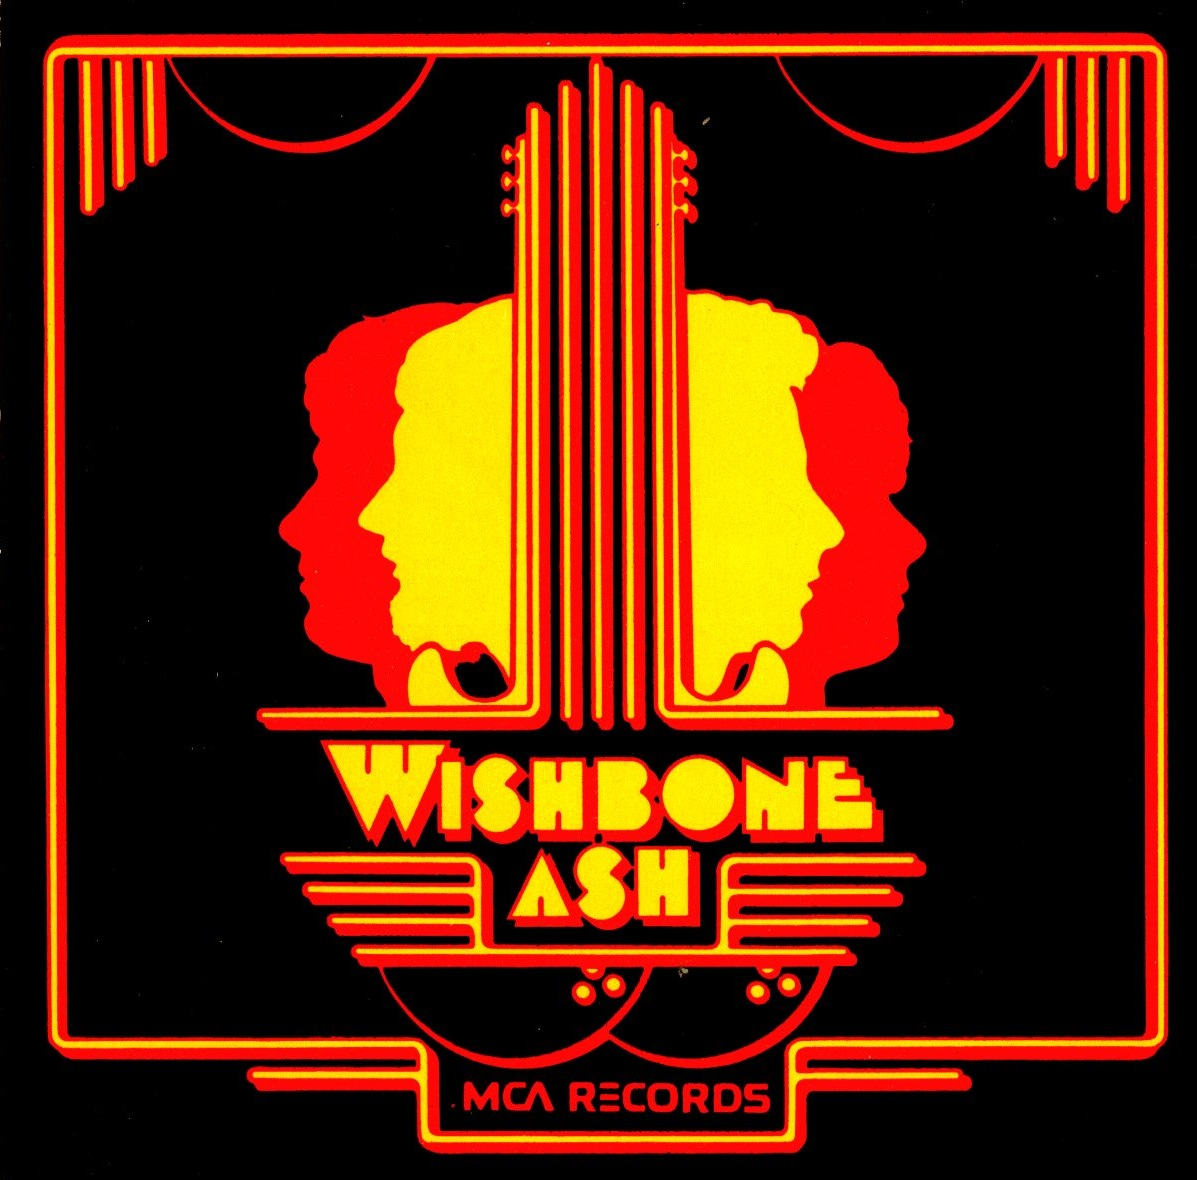 wishbone ash sticker